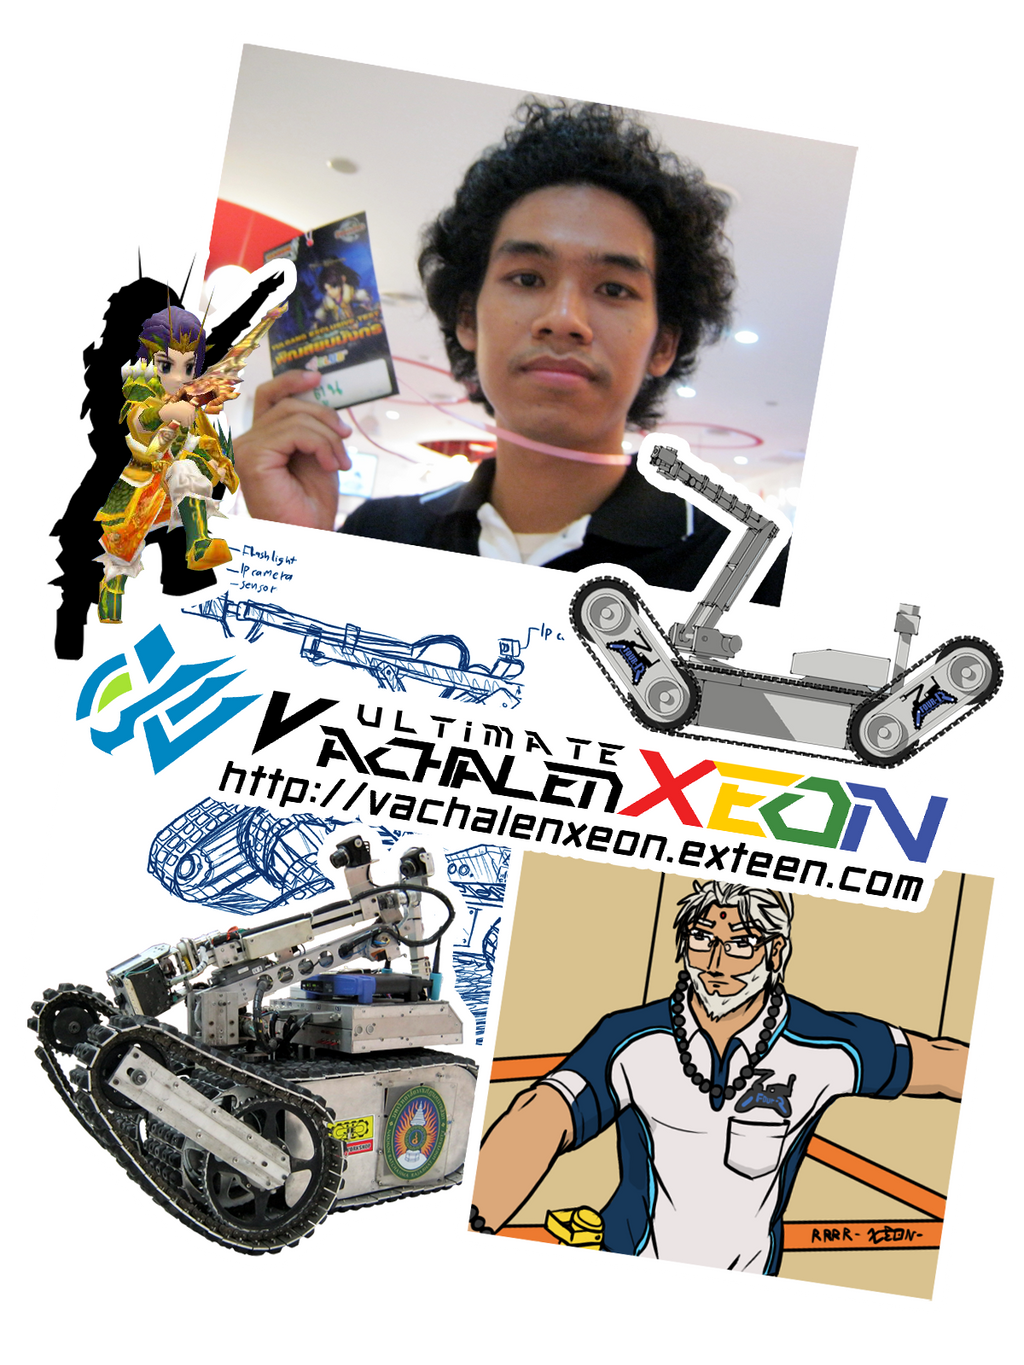 VachalenXEON's Profile Picture